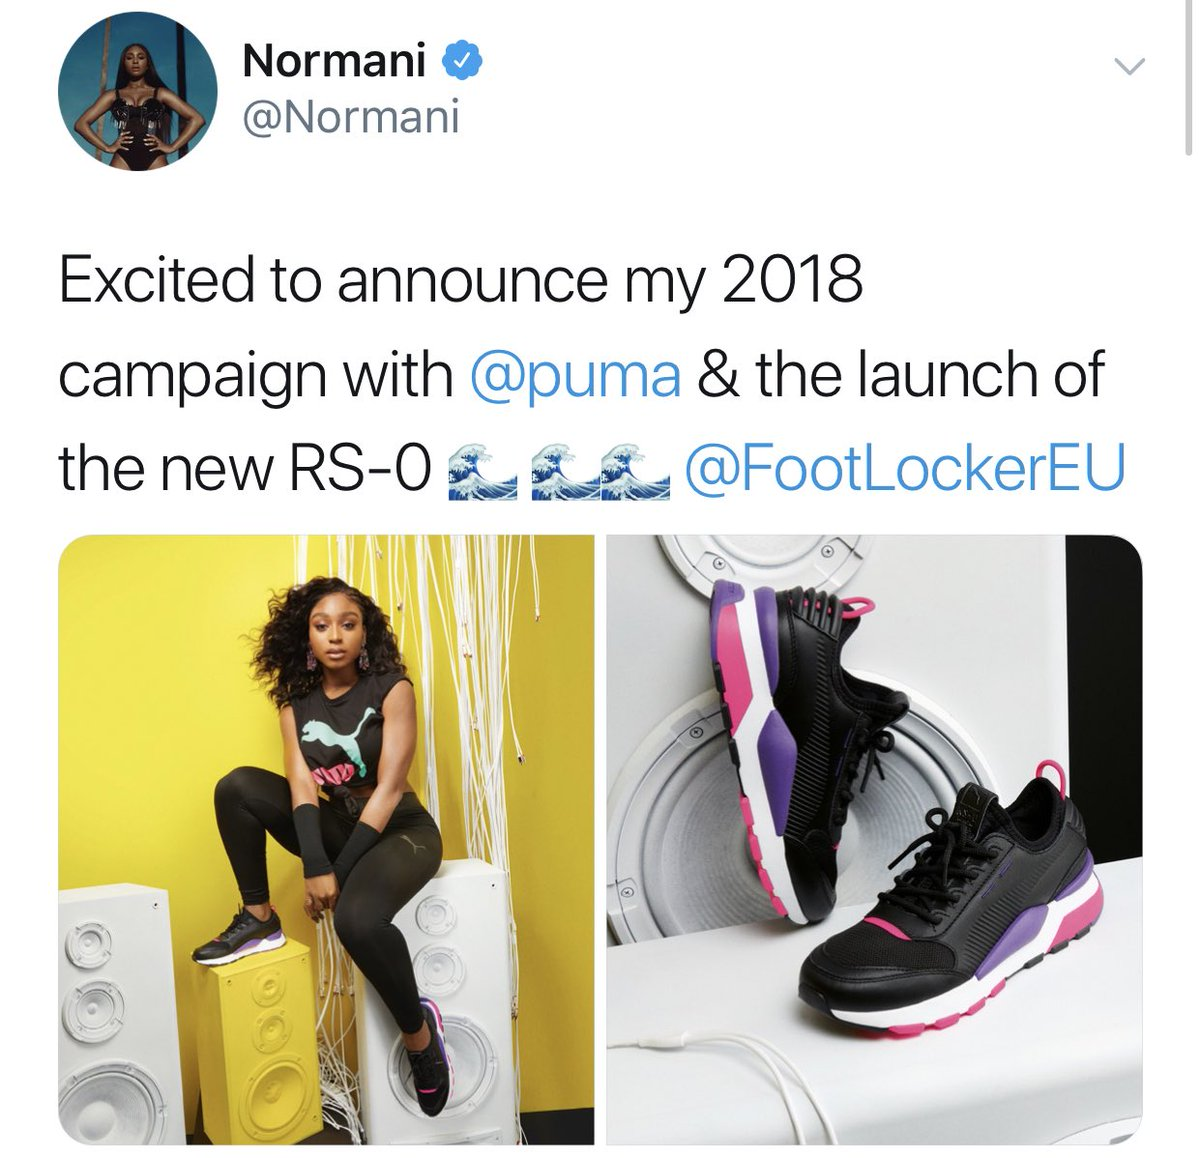 .@Normani has been announced as the latest addition to @Puma's all-star lineup of celebrity ambassadors, which includes Rihanna, Selena Gomez, Cara Delevingne, Kylie Jenner and The Weeknd. <br>http://pic.twitter.com/5gSlYpiXws